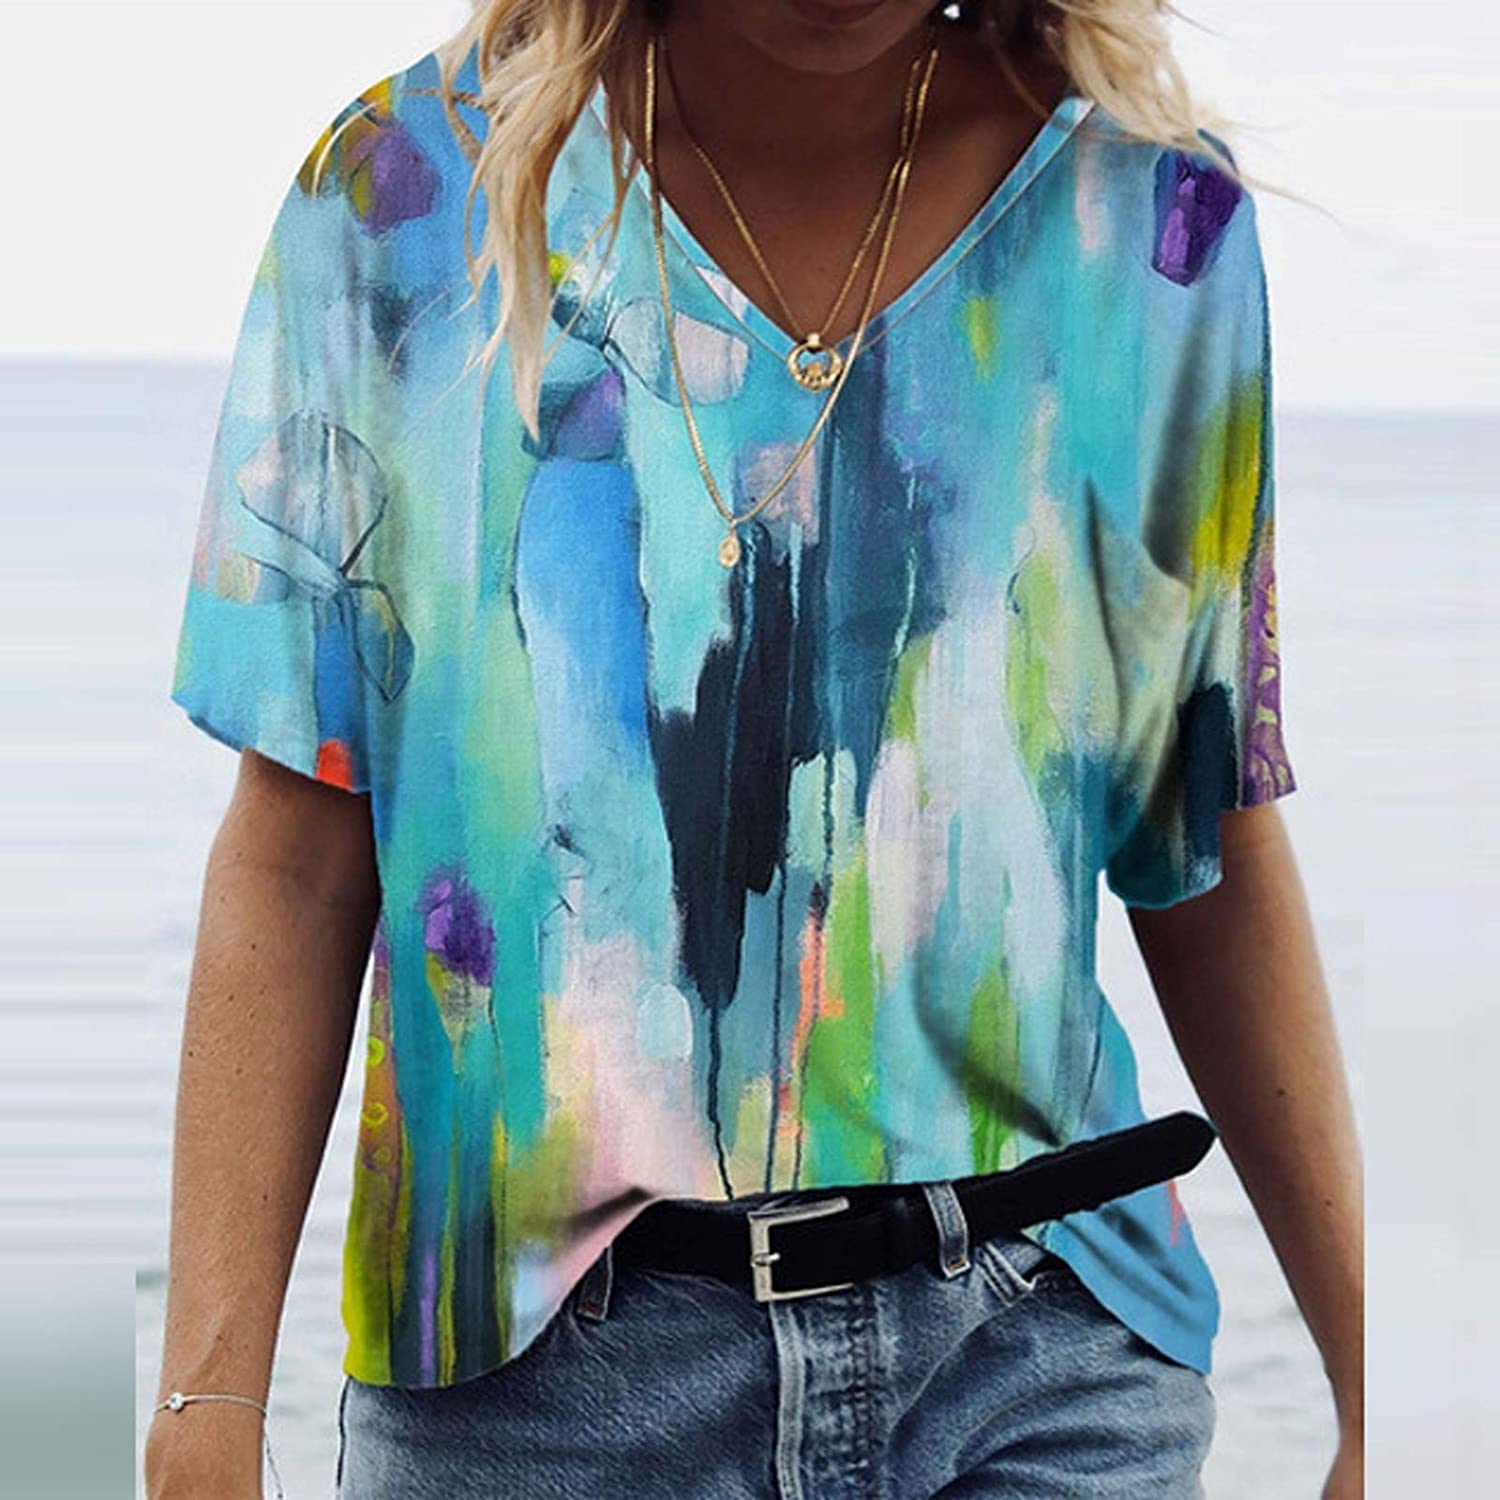 Womens Blouse Short Sleeve,Womens Relaxed-Fit Lightweight Summer Tops Fashion Printed V-Neck T-Shirt Tees Plus Size